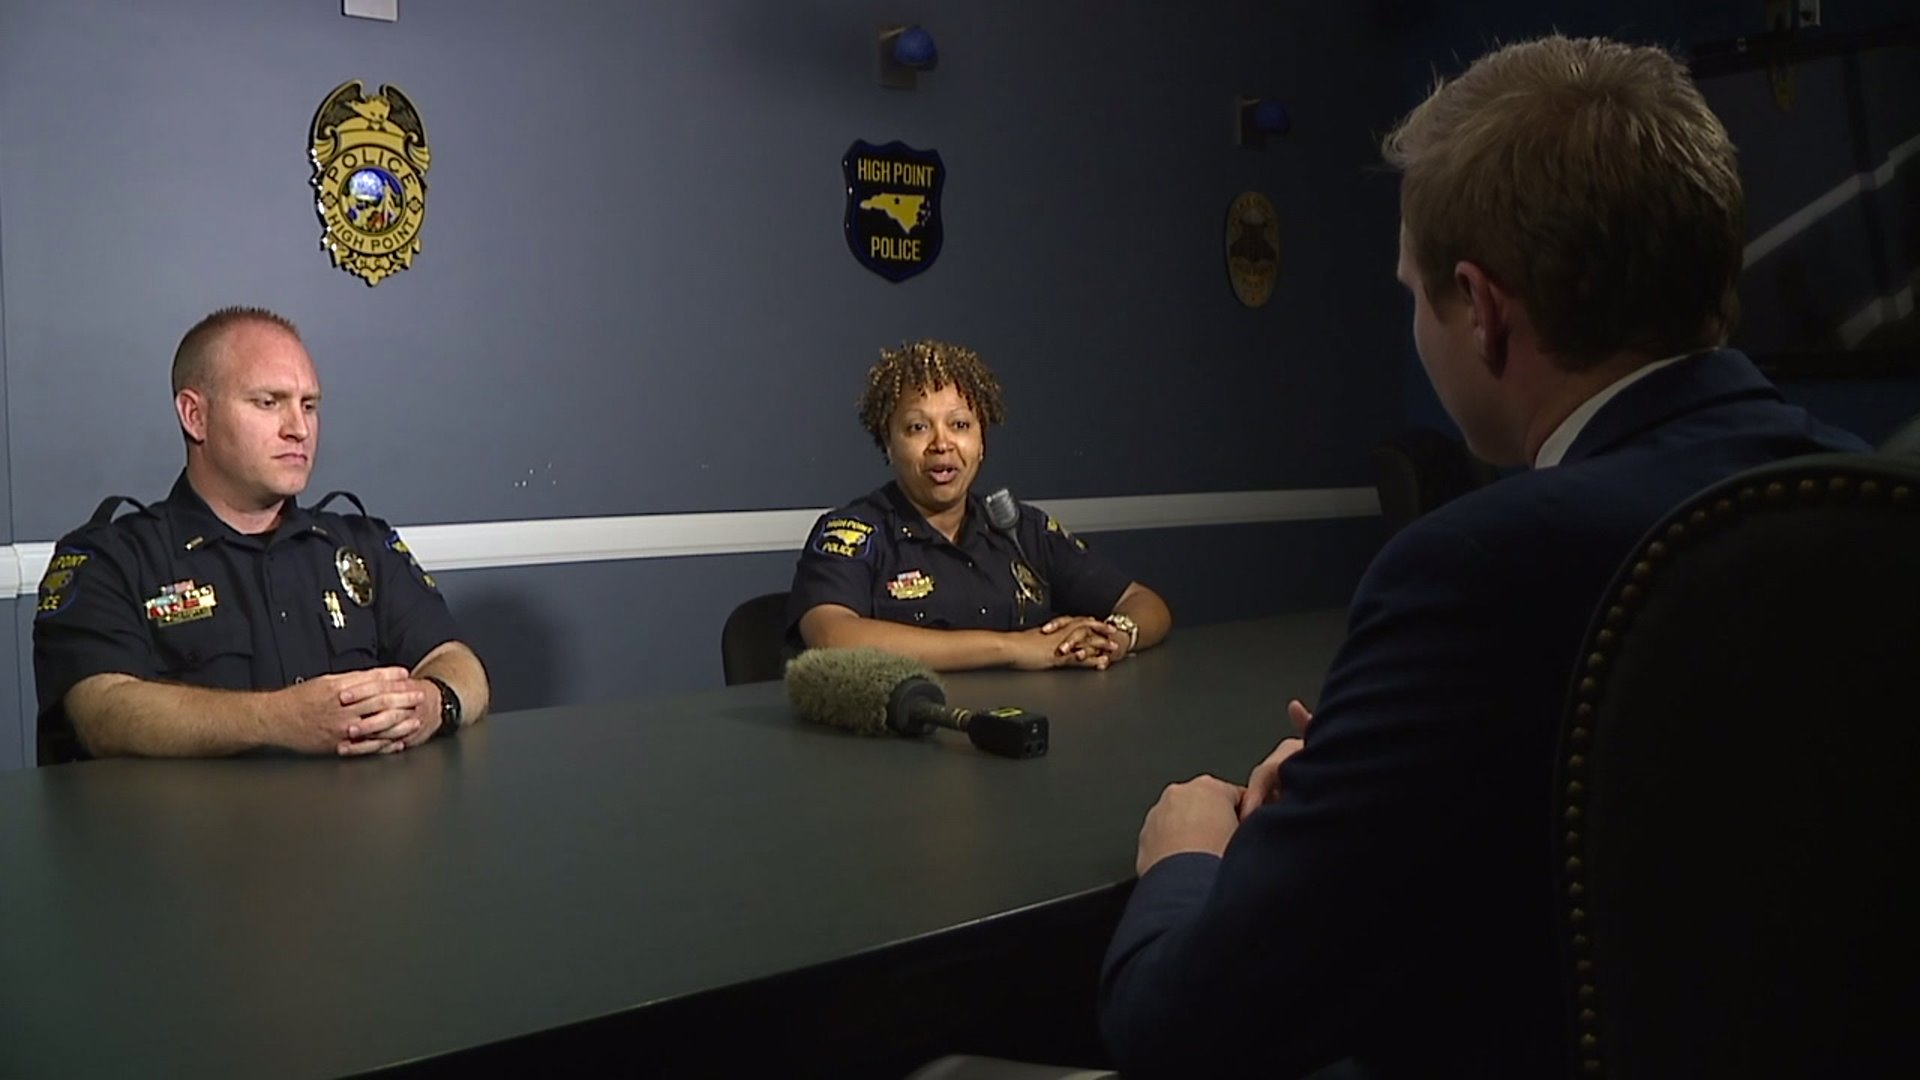 High Point officers reflect on national movement, and discuss conversations had within department